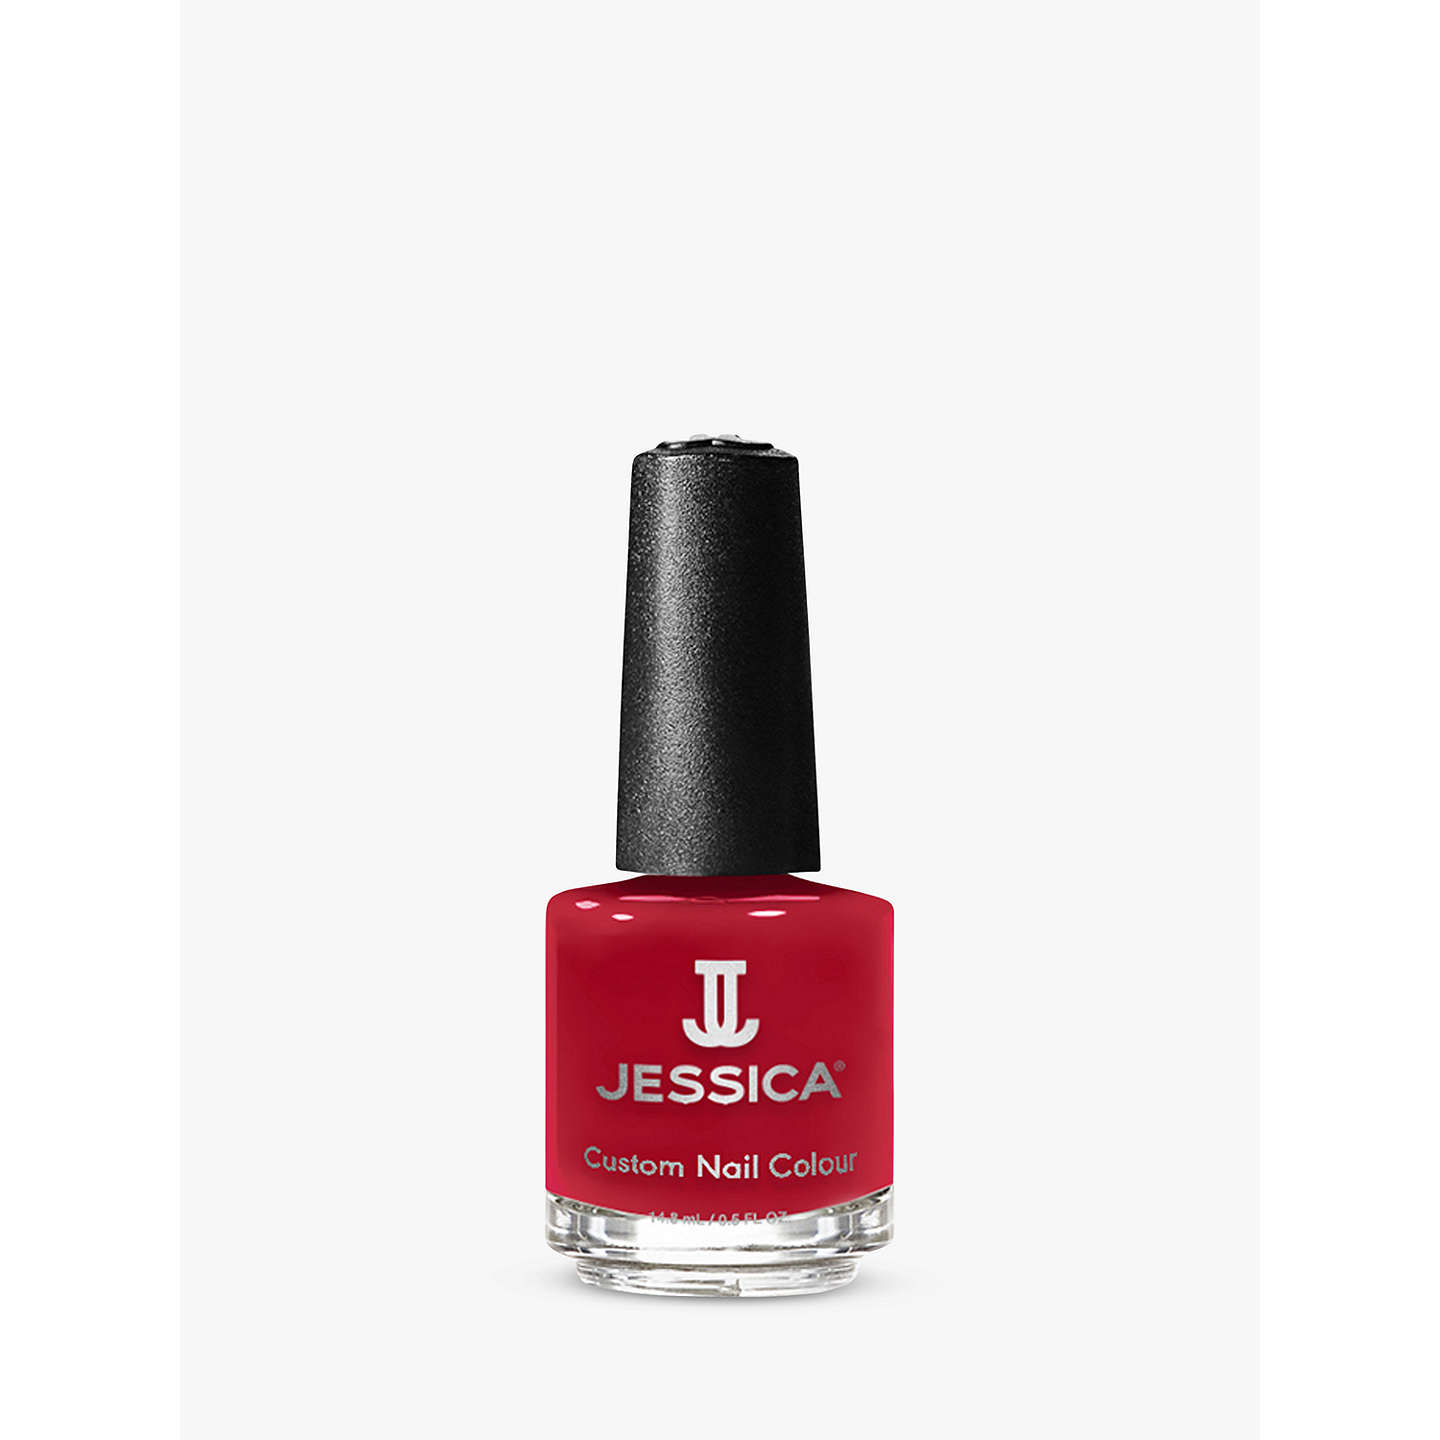 Jessica Custom Nail Colour - Reds at John Lewis